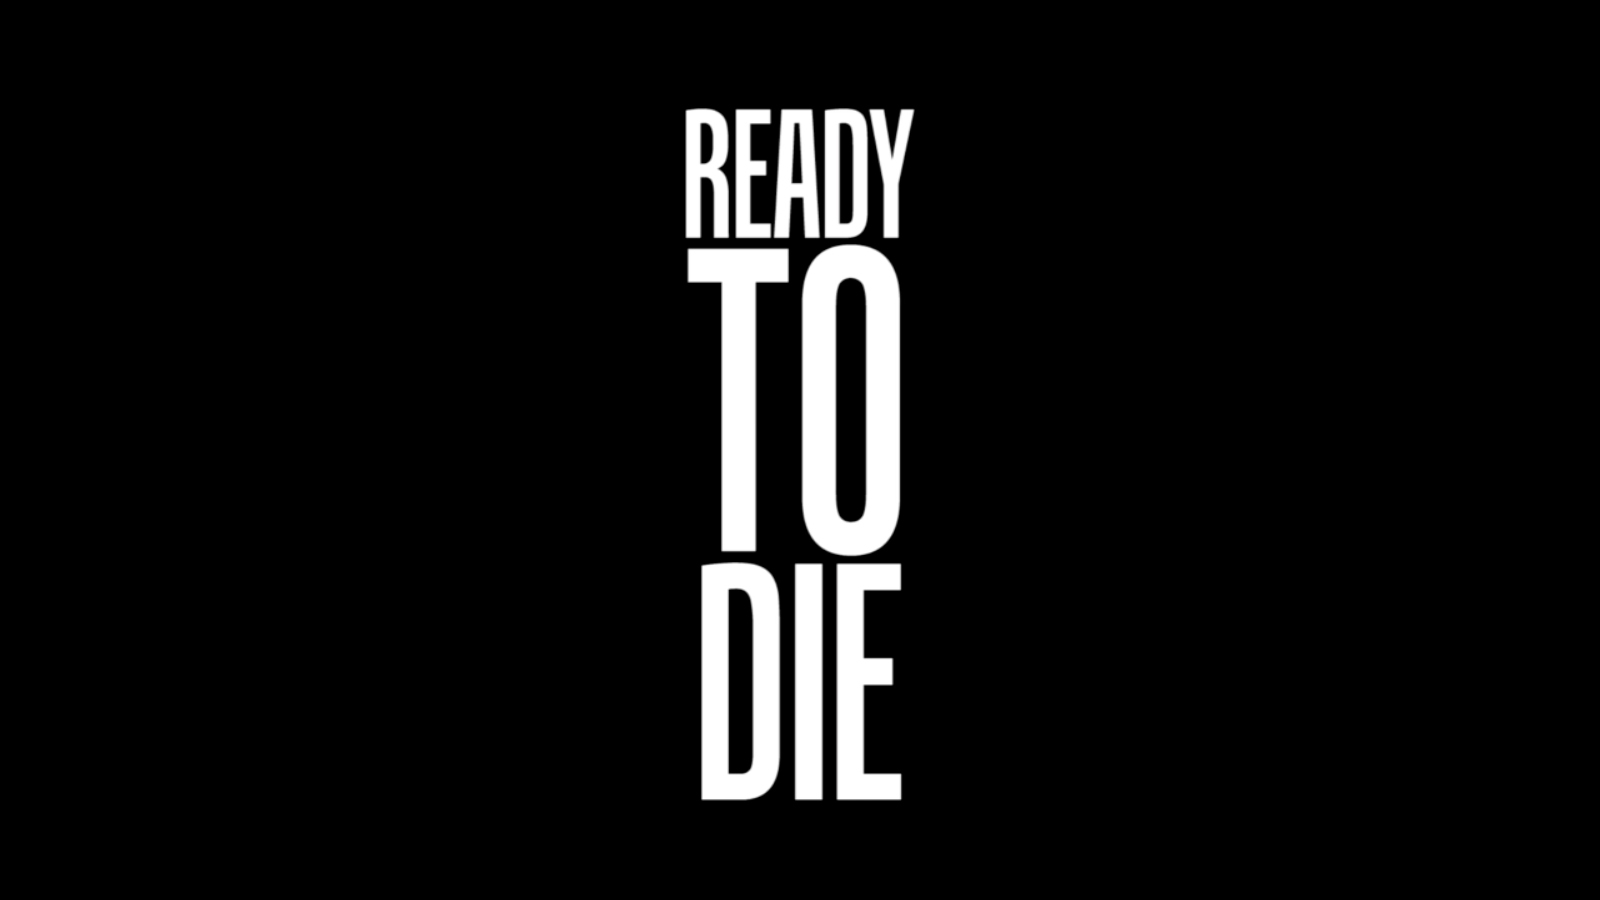 ready to die Find album reviews, stream songs, credits and award information for ready to die - the notorious big on allmusic - 1994 - the album that reinvented east coast rap.